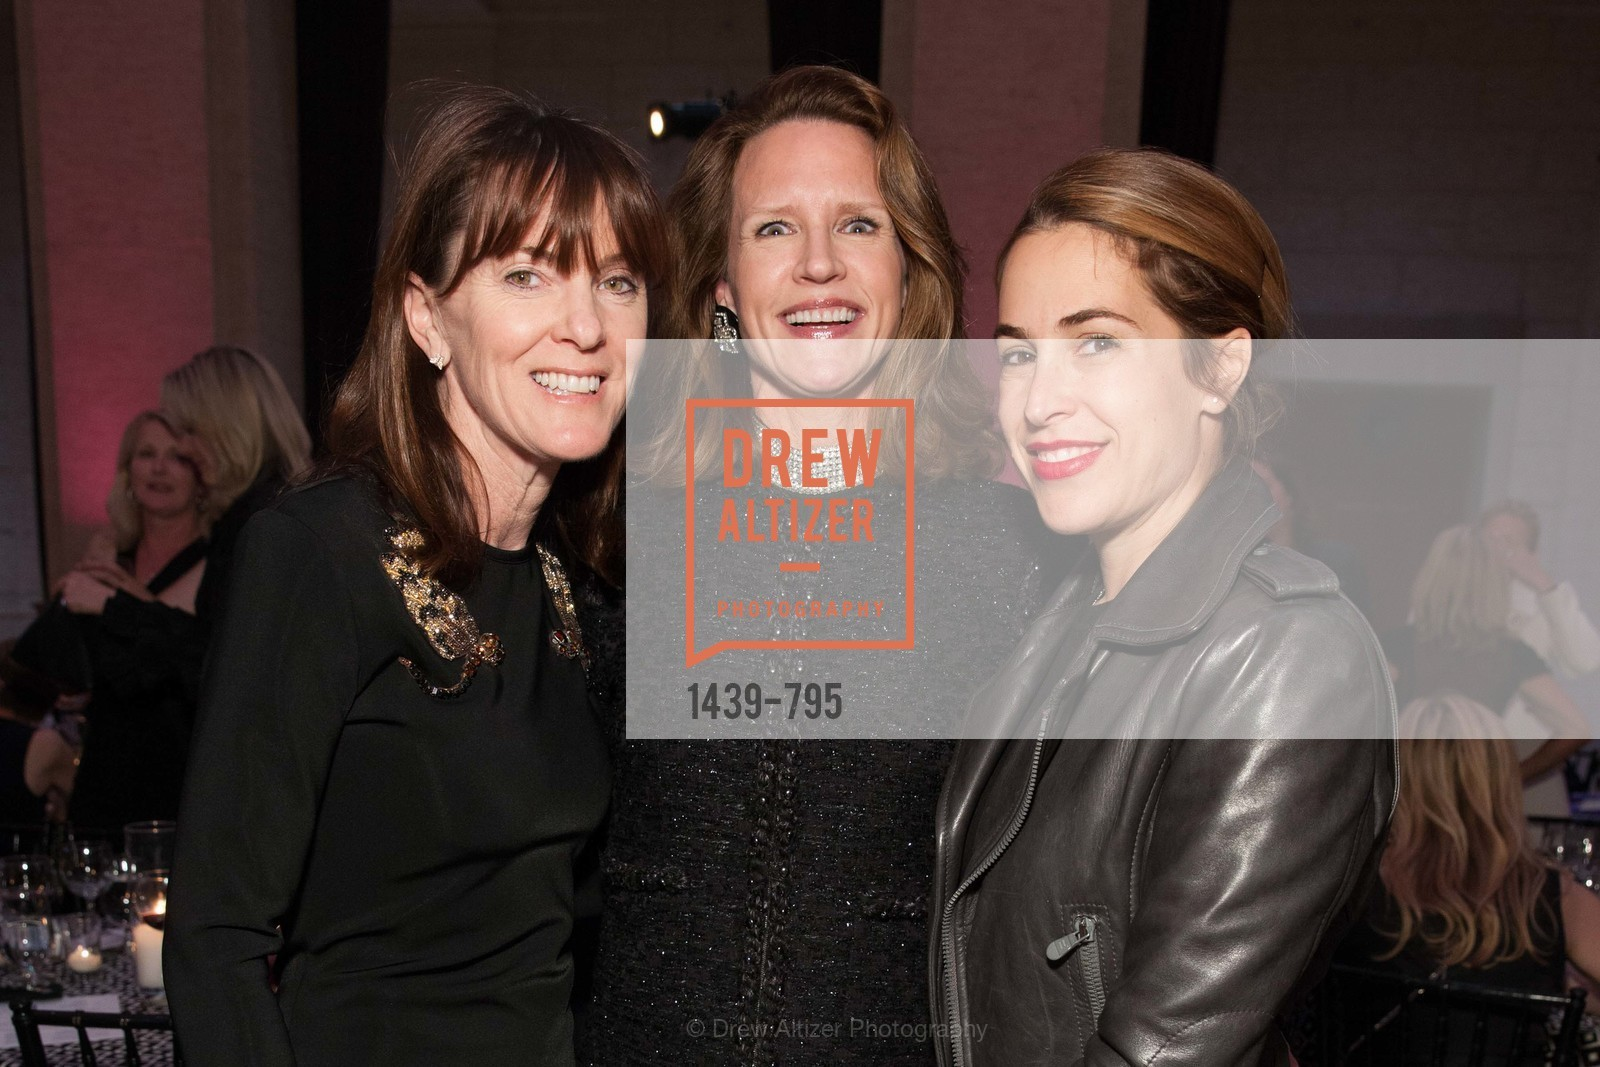 Allison Speer, Barbara Vaughn Hoimes, Alison Pincus, COMPASS FAMILY SERVICES Annual Spring Benefit:  Every Family Needs A Home, US, April 23rd, 2015,Drew Altizer, Drew Altizer Photography, full-service event agency, private events, San Francisco photographer, photographer California